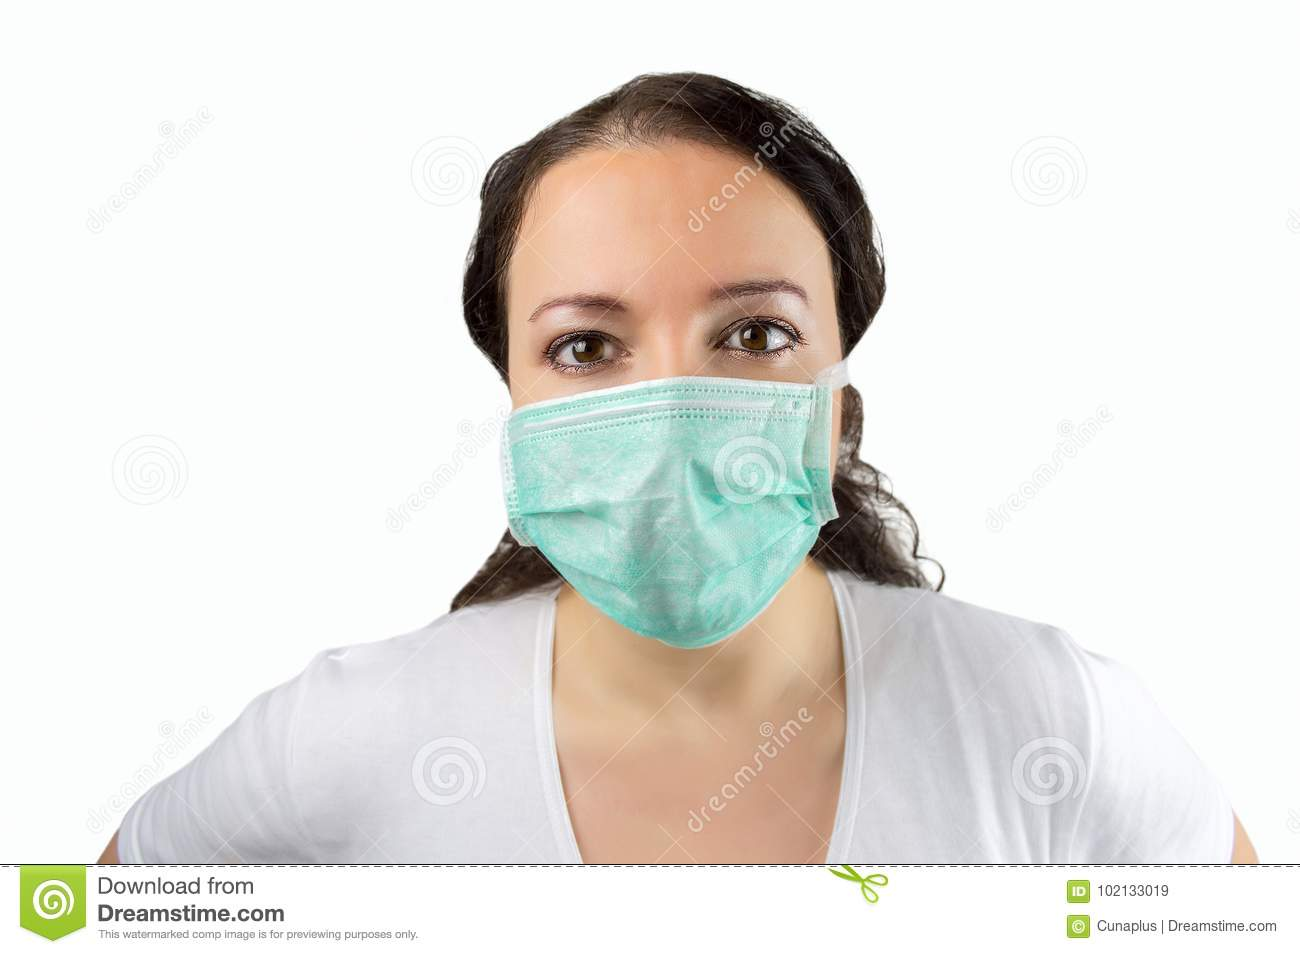 mask to protect from virus